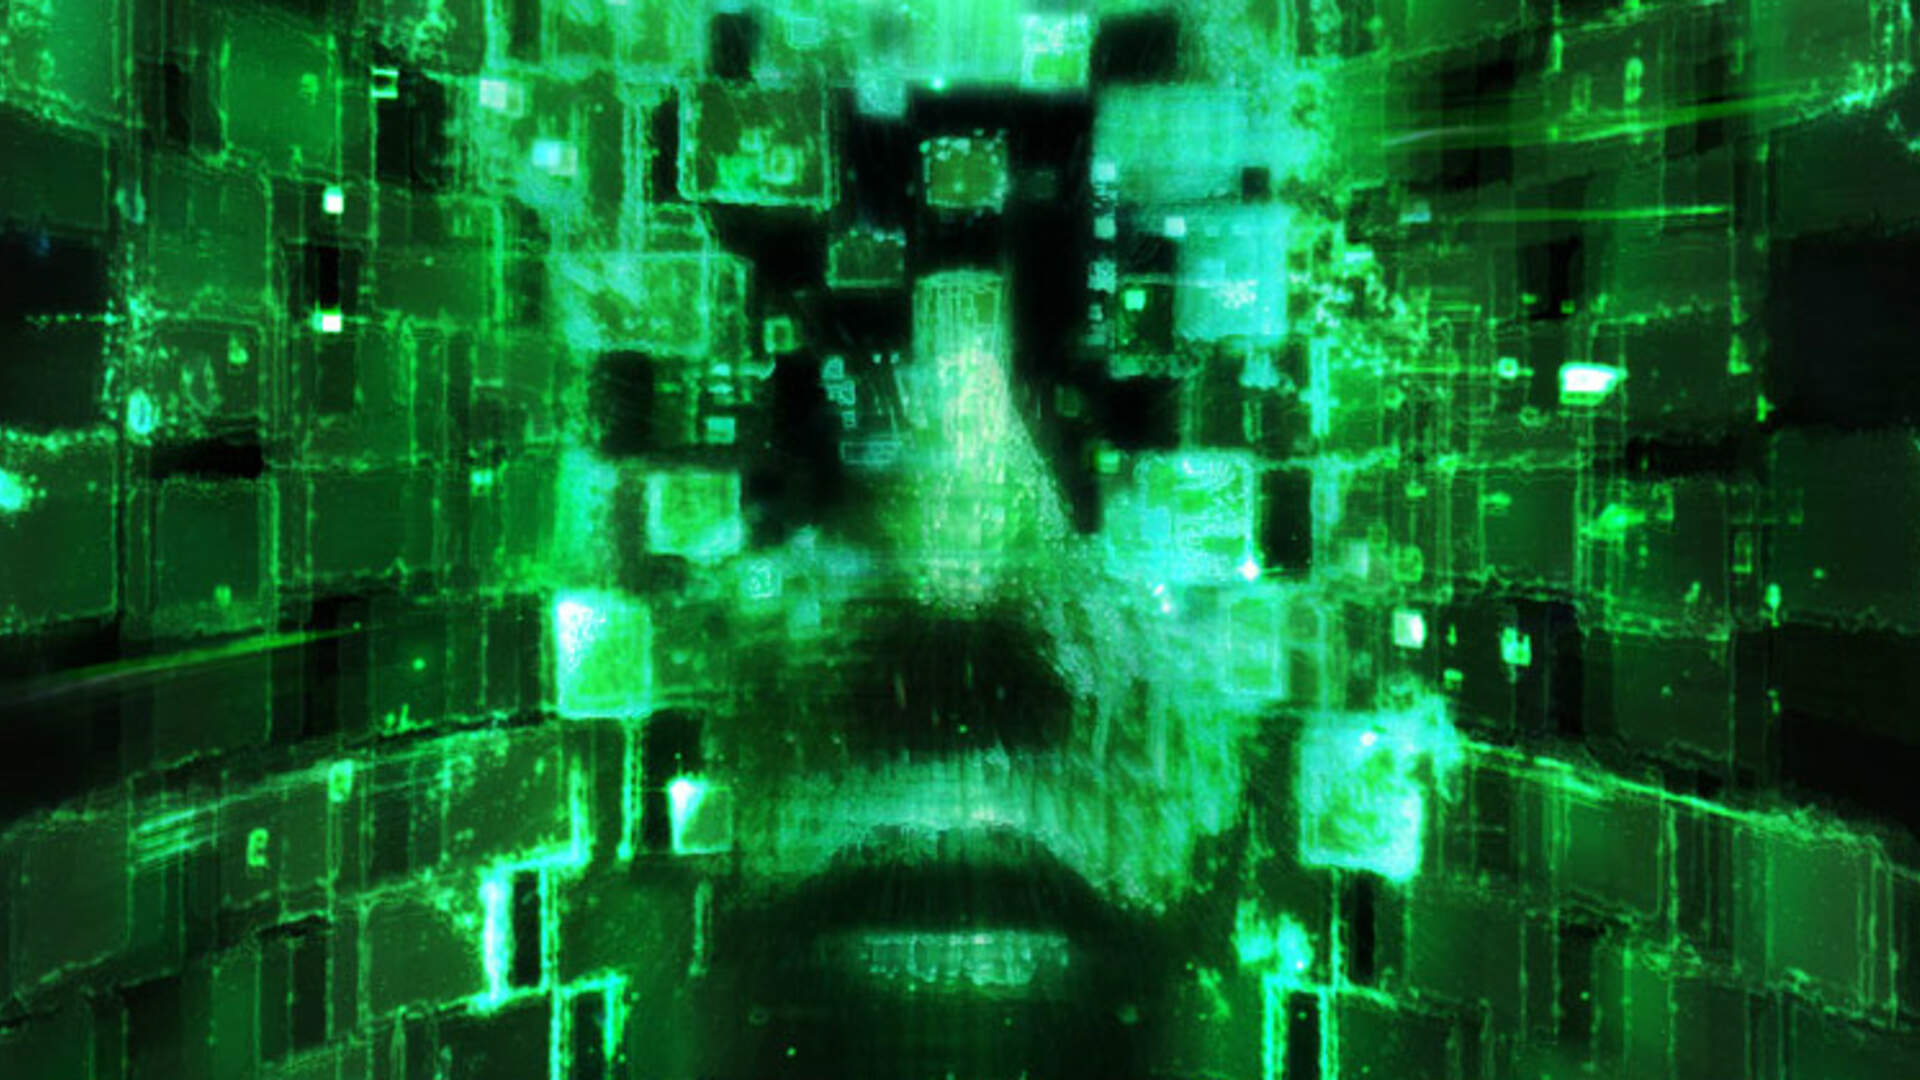 Report: System Shock 3 Team Is No Longer Employed